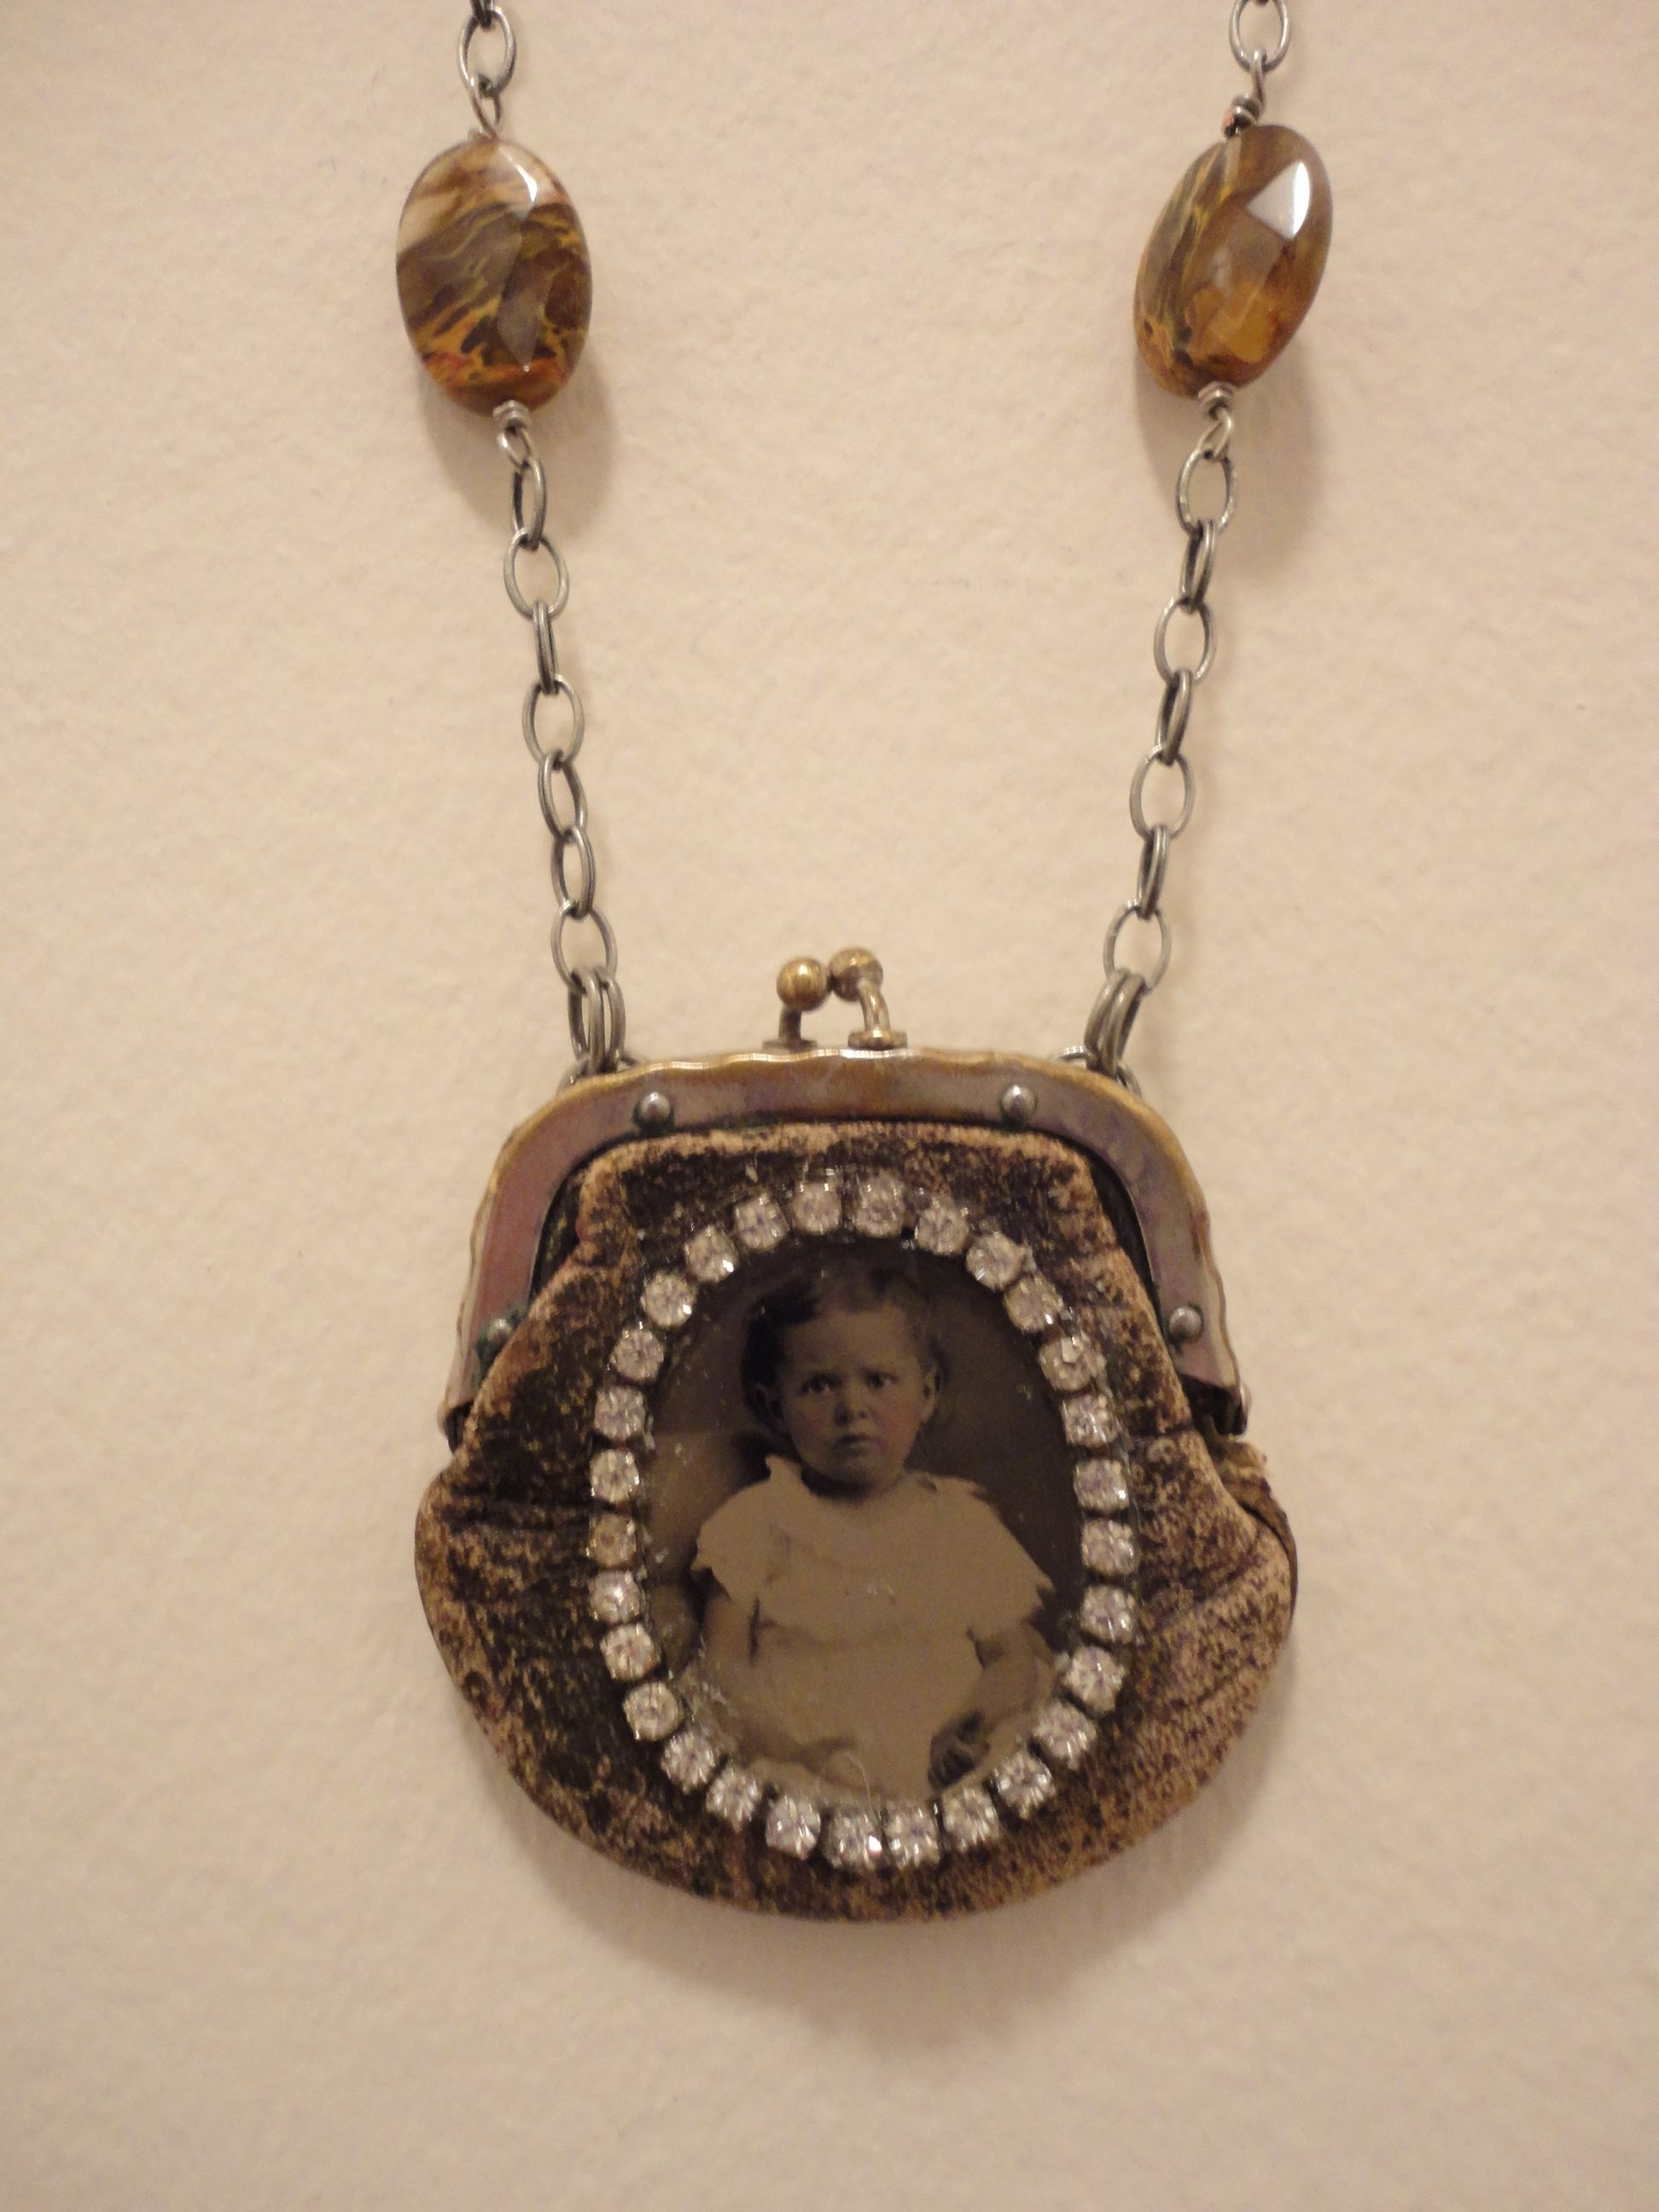 Antique Tiny Treasure Necklace  By Bonnie Arkin  bonniearkin@gmail.com